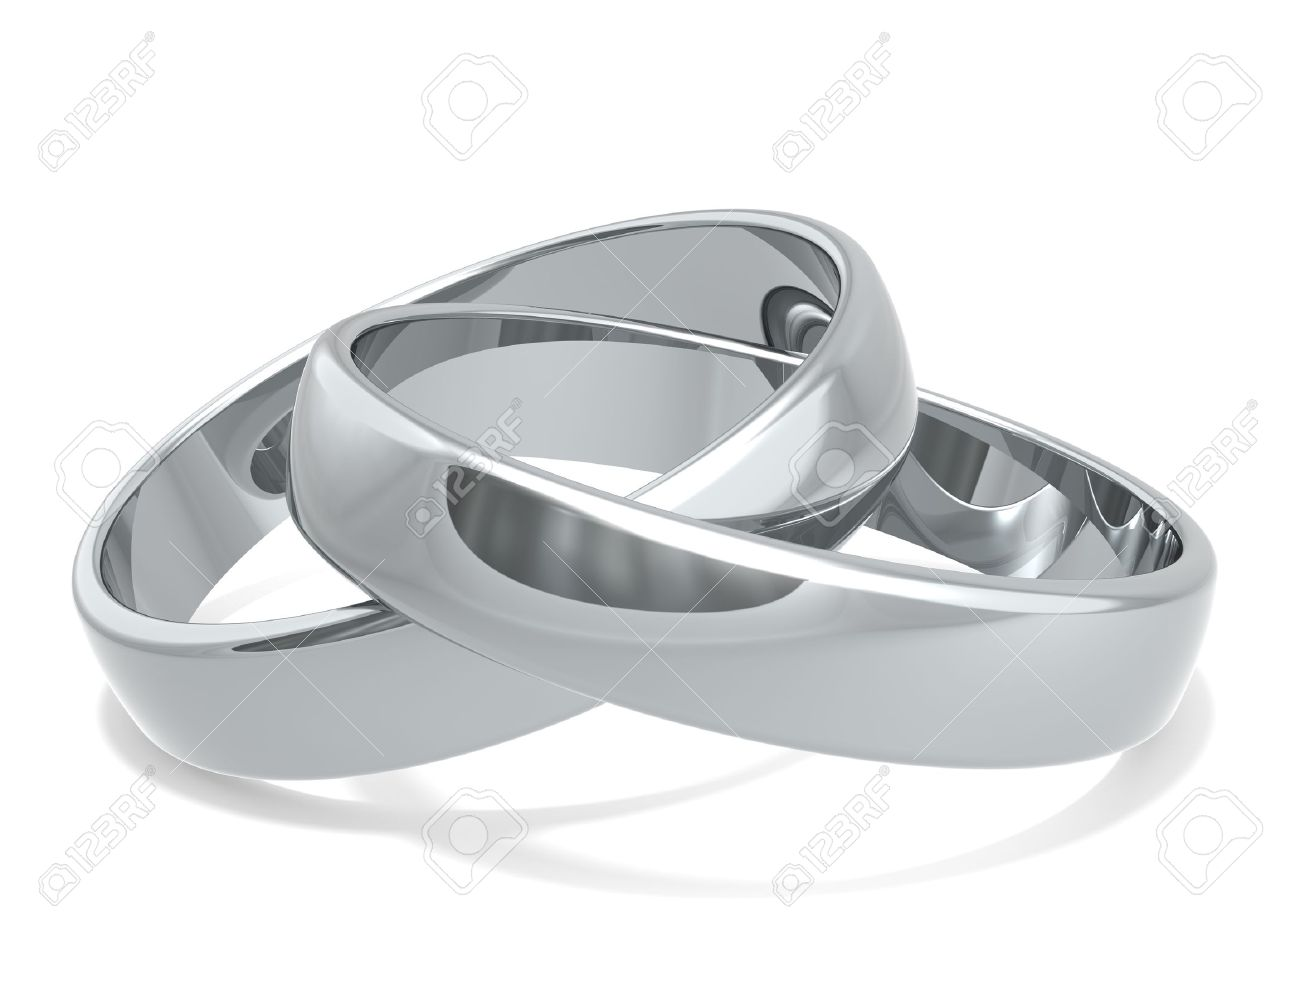 platinum wedding ring wedding rings of platinum x 2 - Platinum Wedding Rings